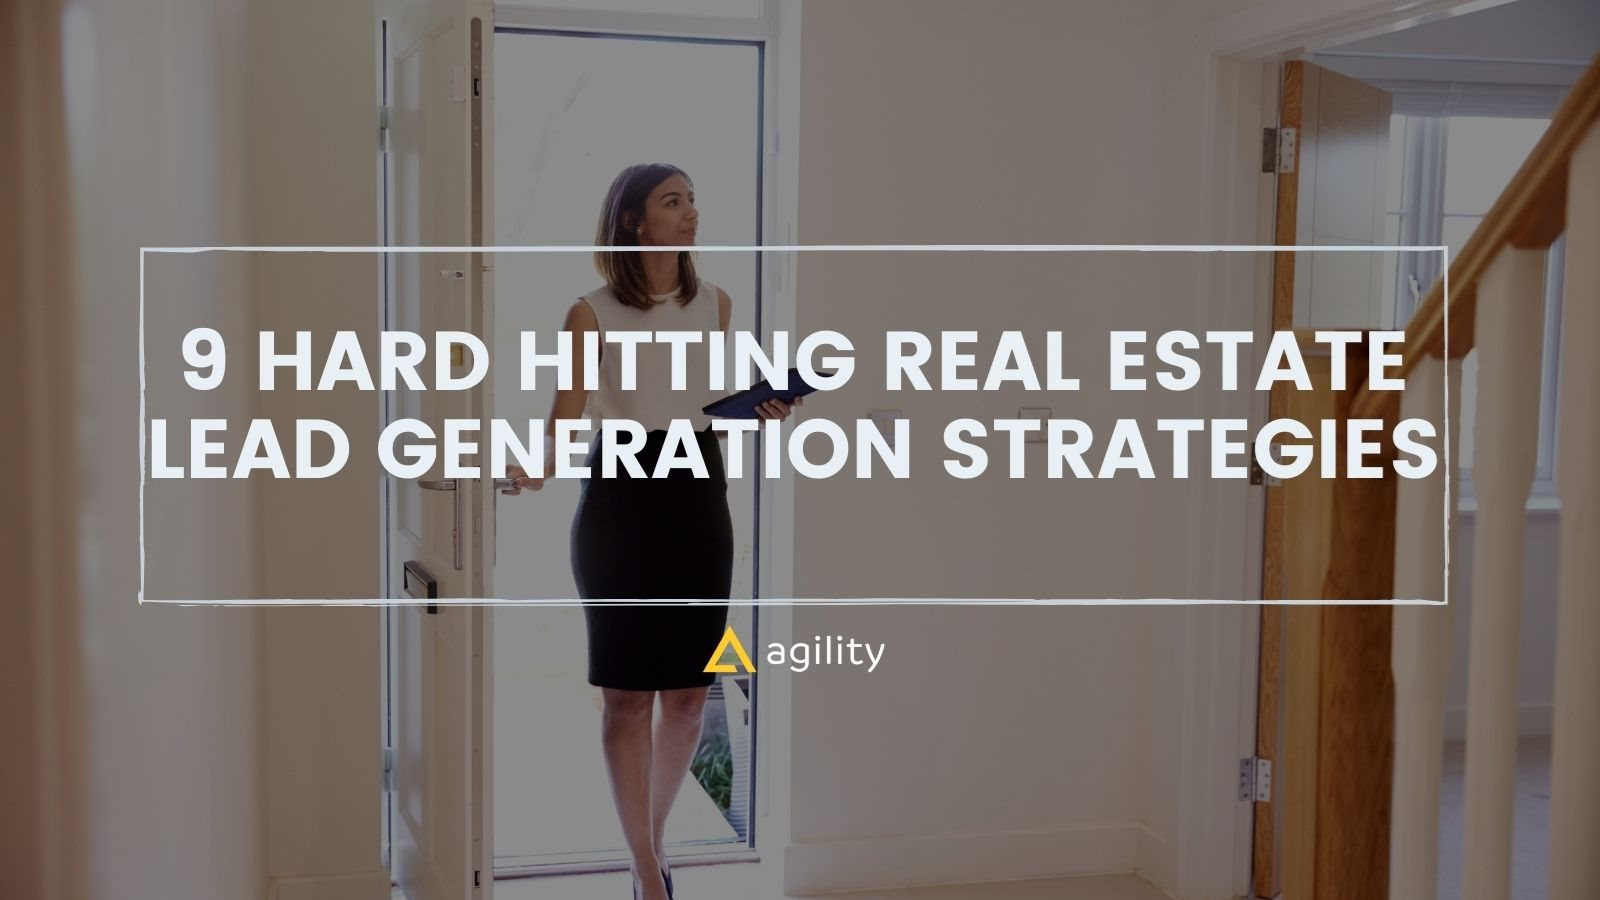 9 Real Estate Lead Generation Strategies on agilitycms.com